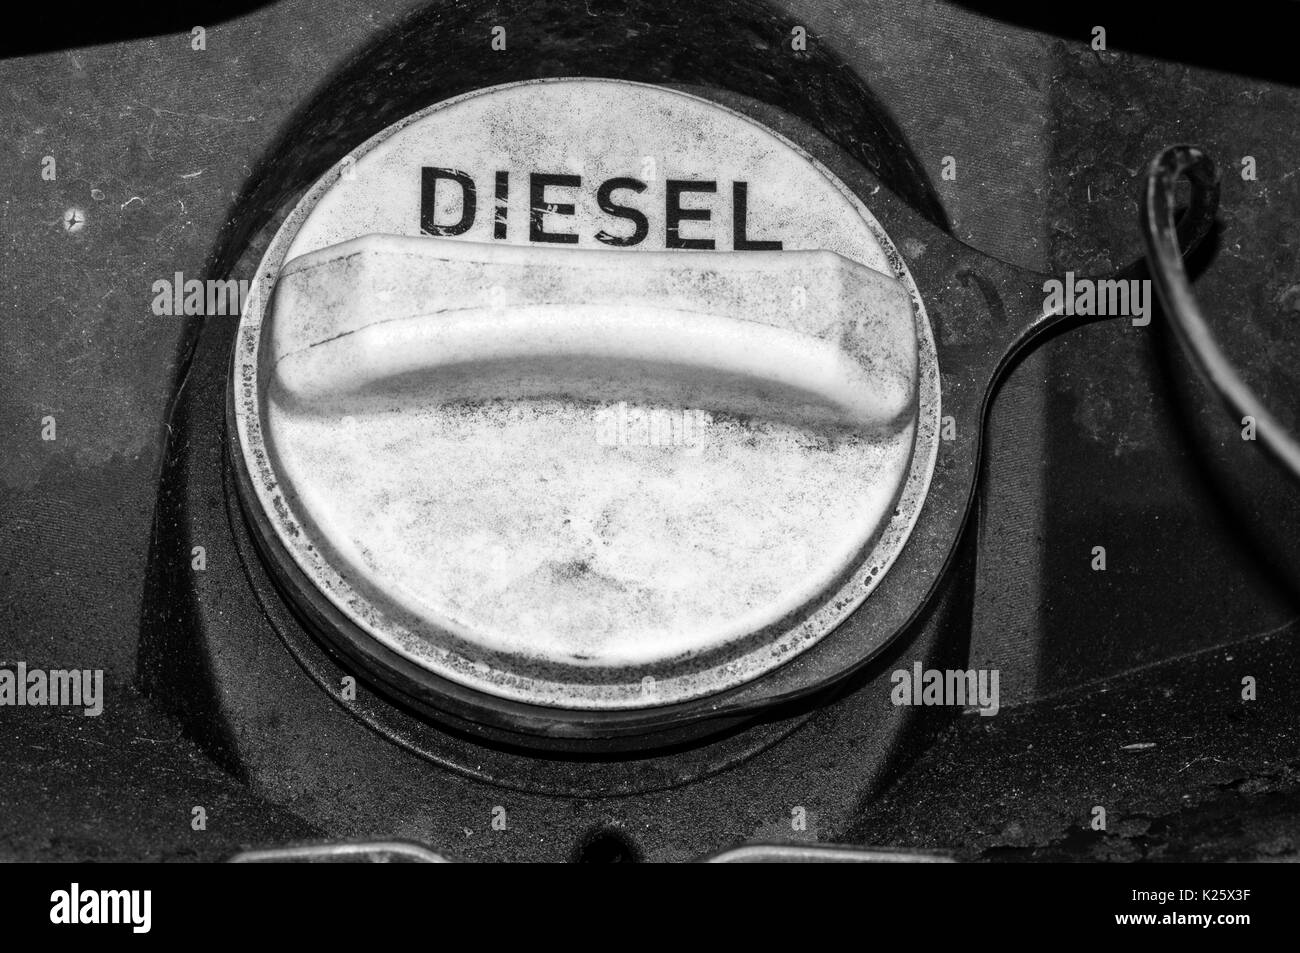 A black & white photograph of the messy filler cap of a diesel fuelled Land Rover.  See K0Y4EM for colour version. - Stock Image